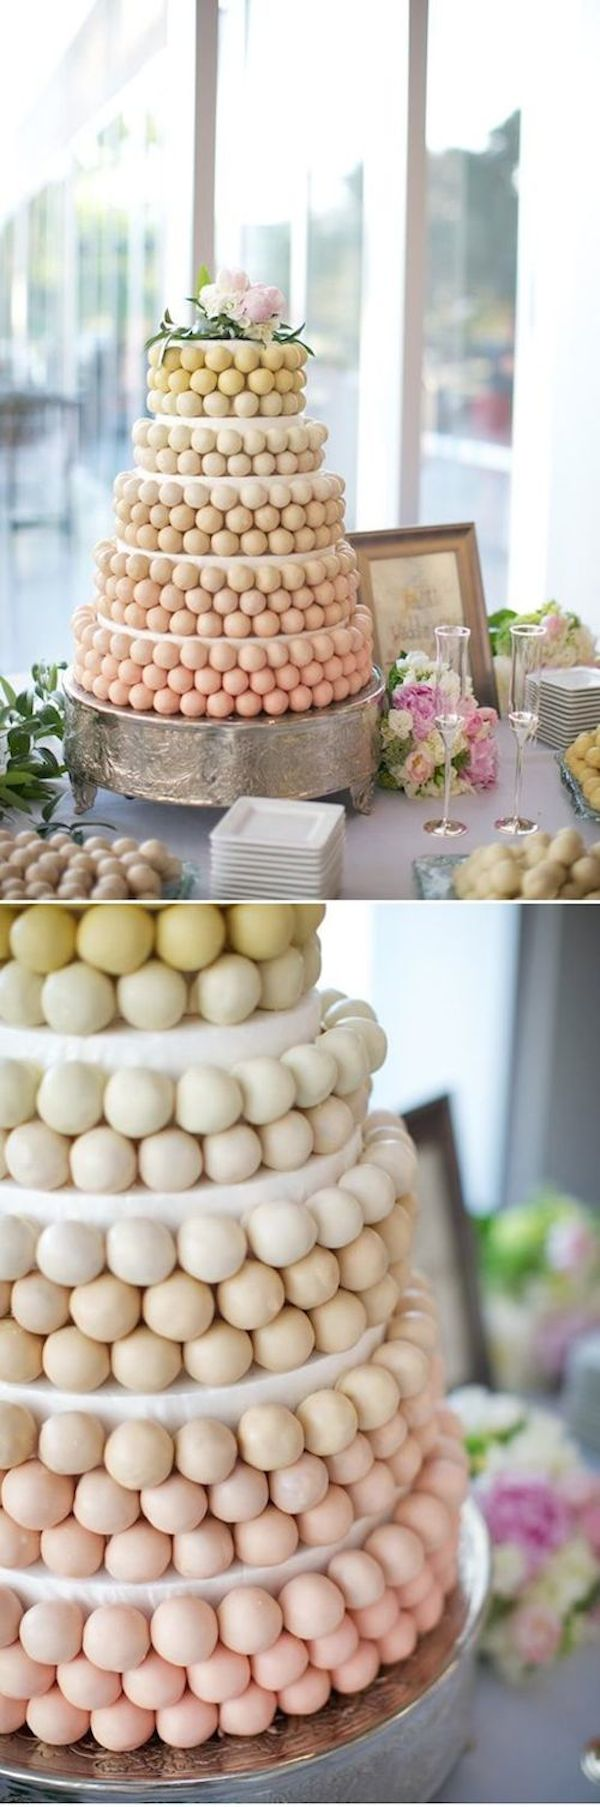 wedding-cake-alternatives-cake-pops-7